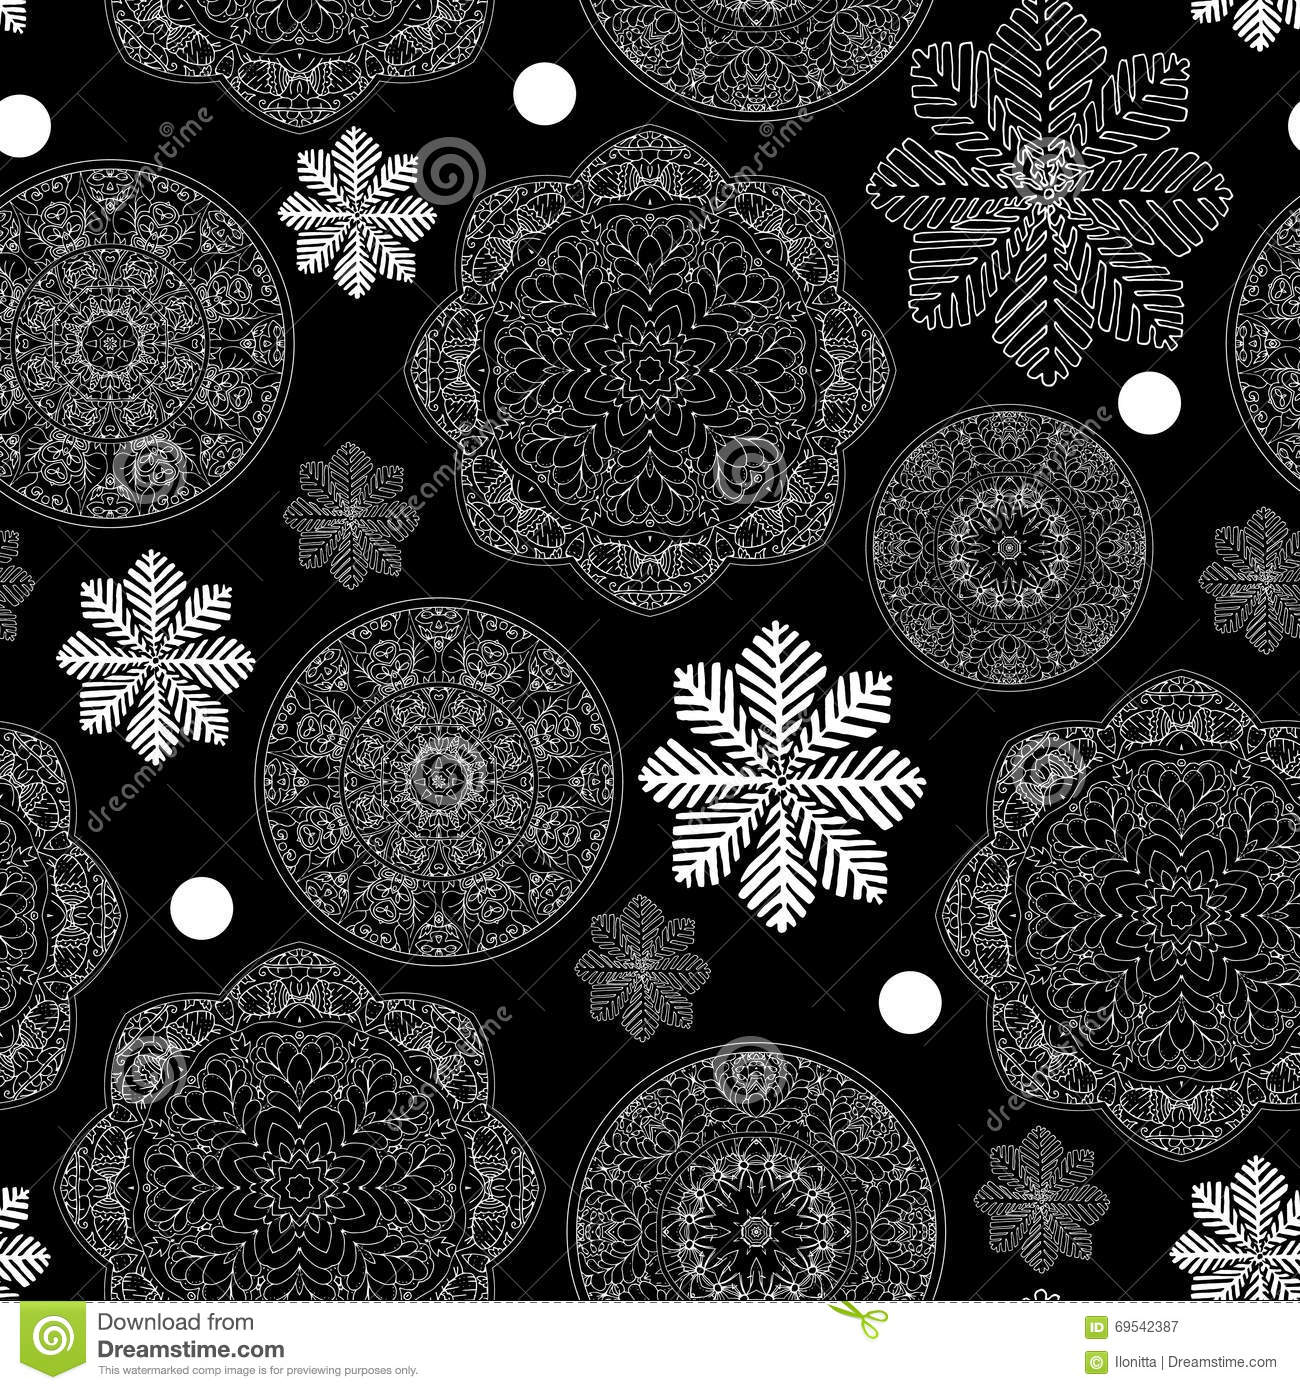 Rustic Winter Seamless Pattern For Scrapbook Paper Design For Merry